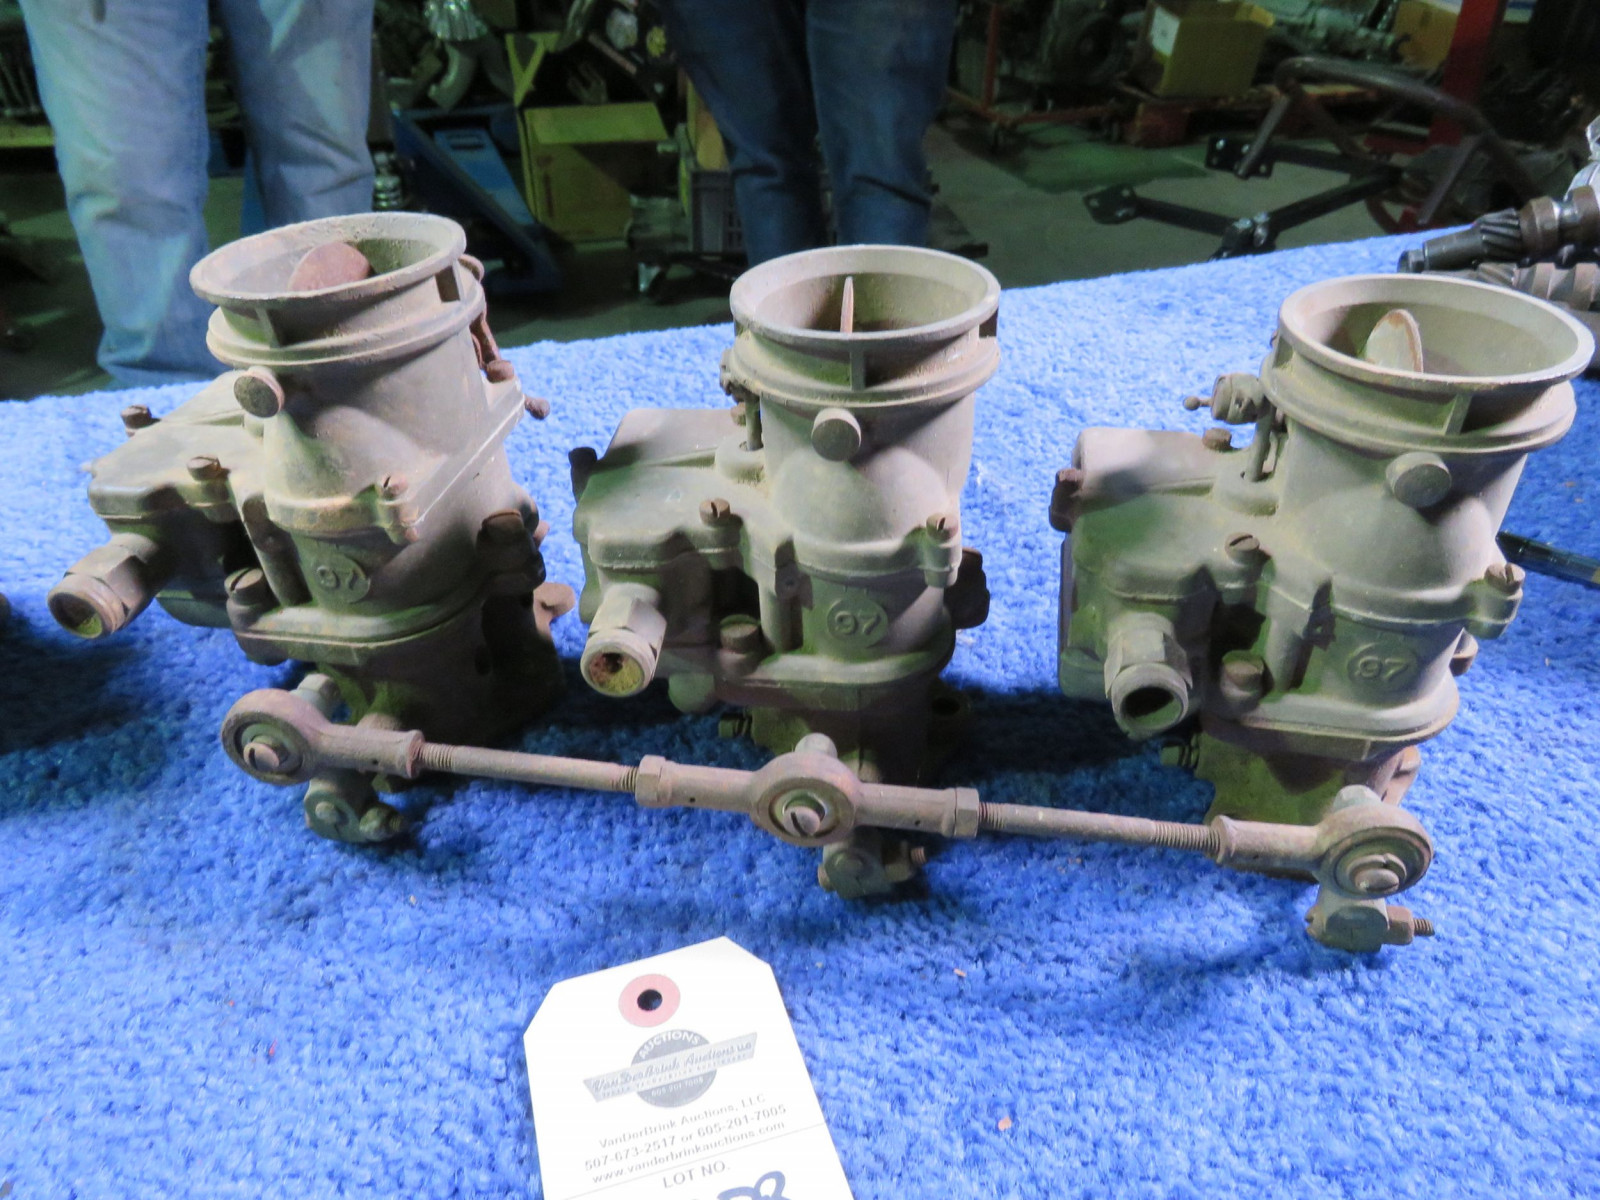 Lot 252BB – Tri-Power for Flathead V8 #97 Carbs with Extra